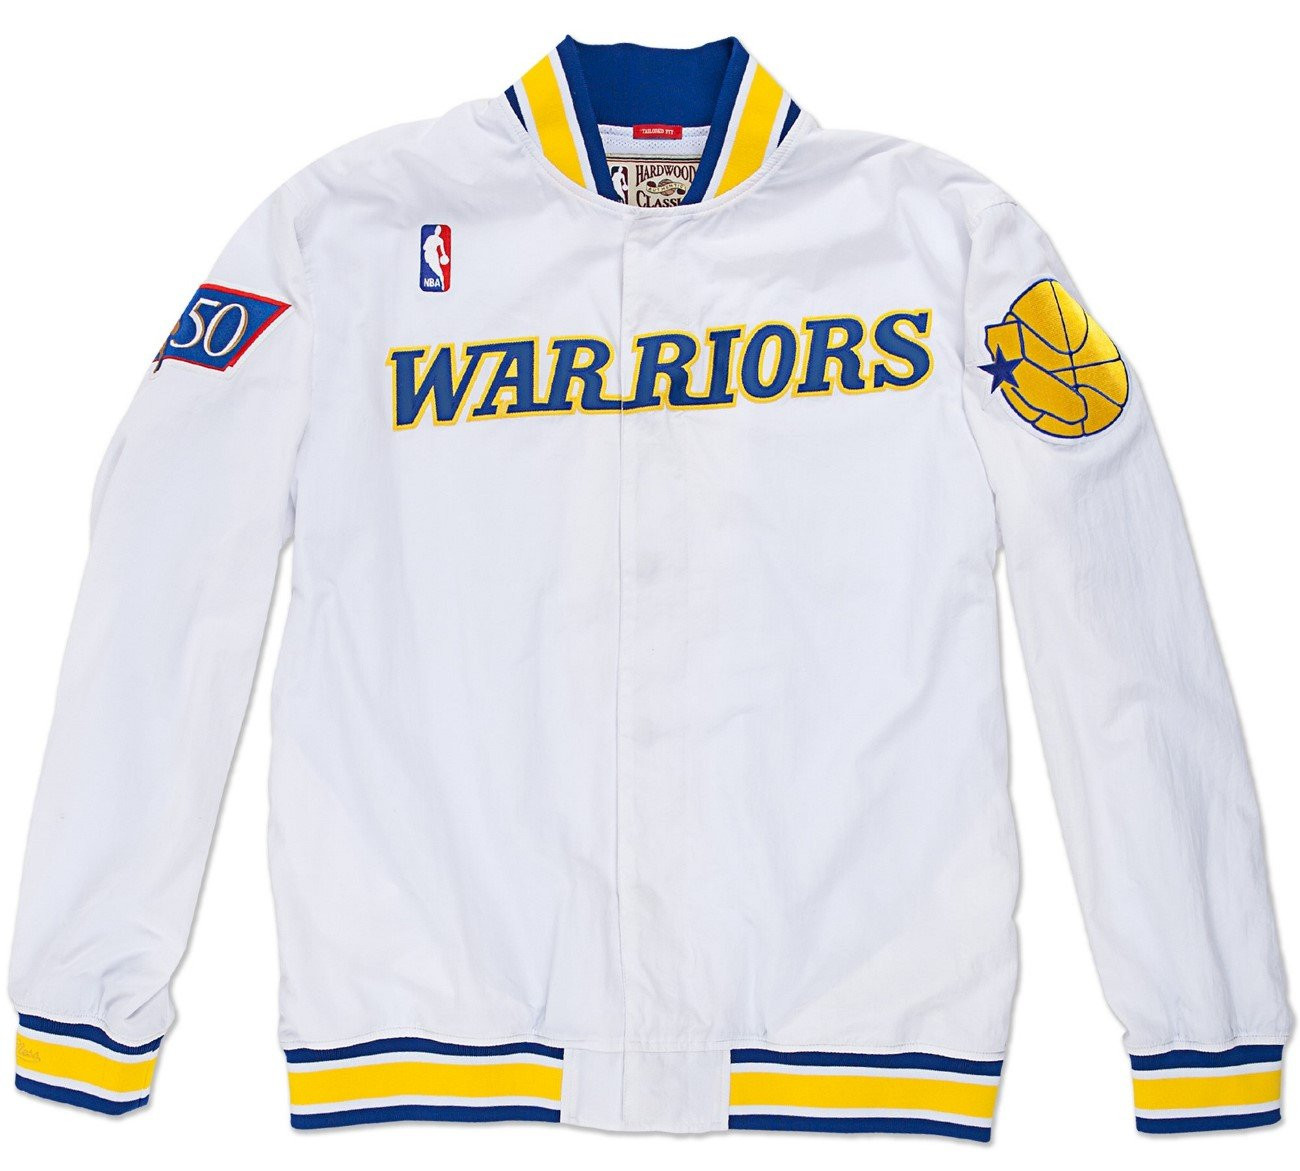 best service d5469 df272 Mitchell & Ness Golden State Warriors NBA Authentic 96-97 Warmup Premium  Jacket